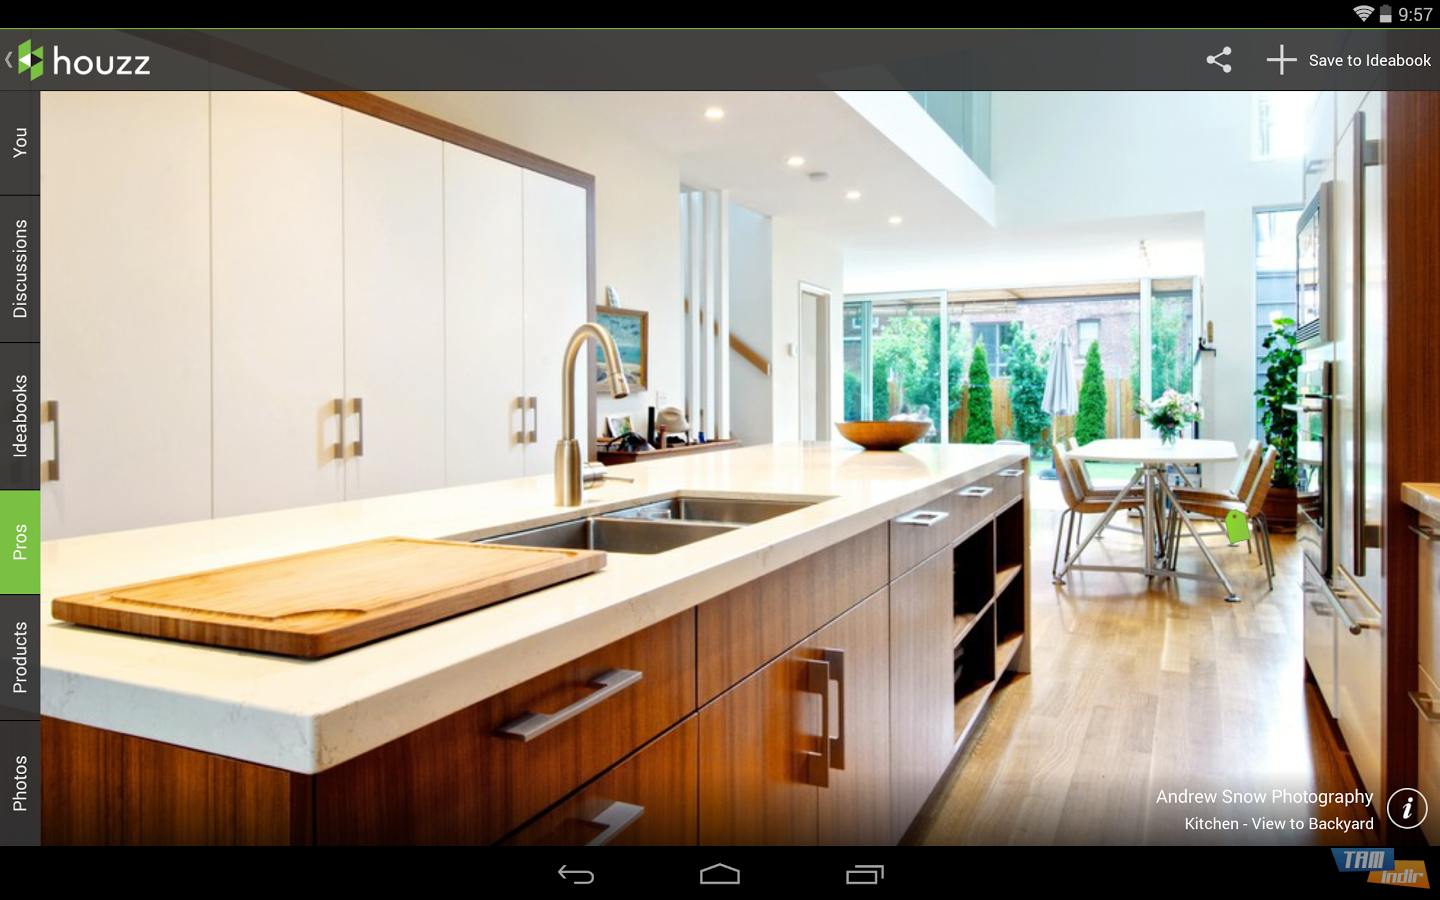 Houzz interior design ideas ndir android i in dizayn for Houzz it